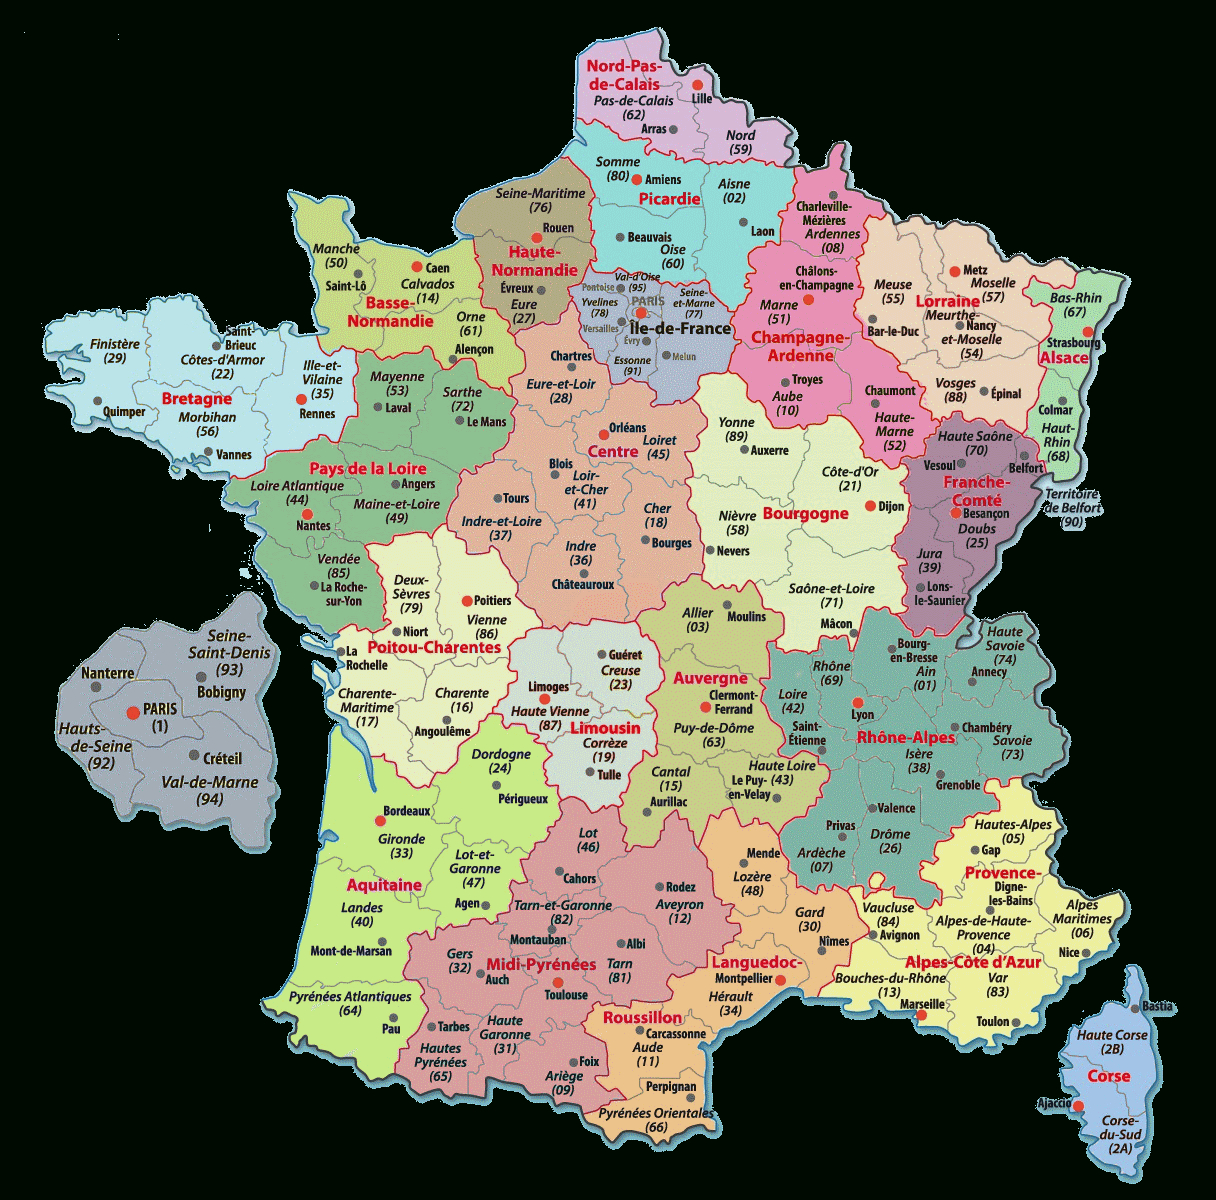 Carte De France Departements : Carte Des Départements De France avec Numero Des Departements Francais